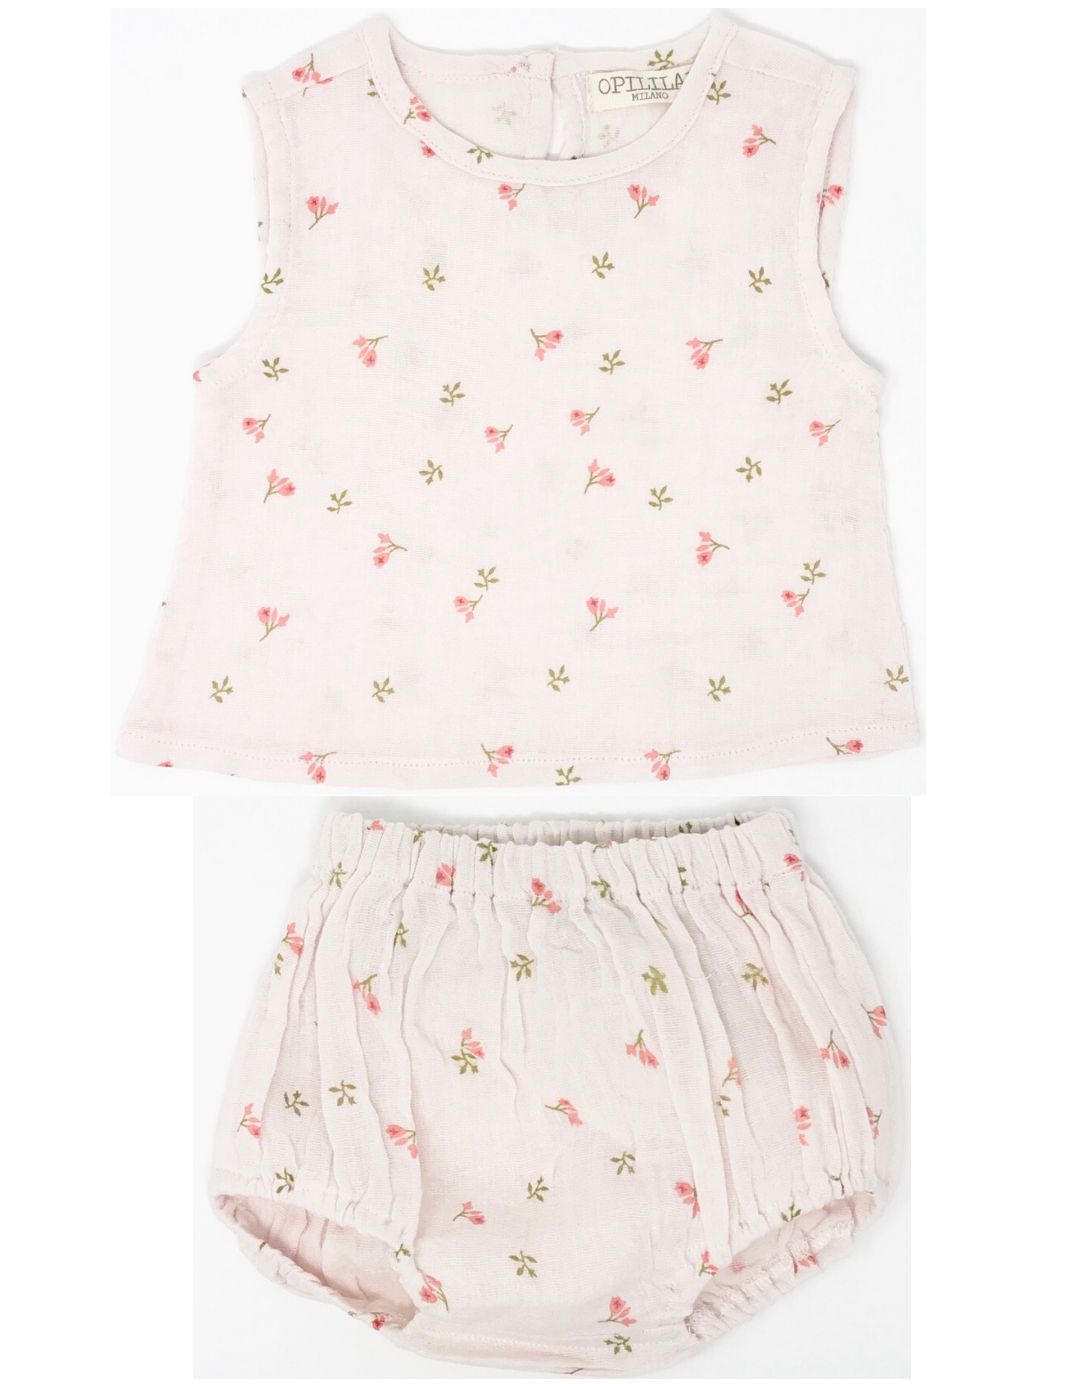 Tulip Sleeveless Top and Bloomer Set